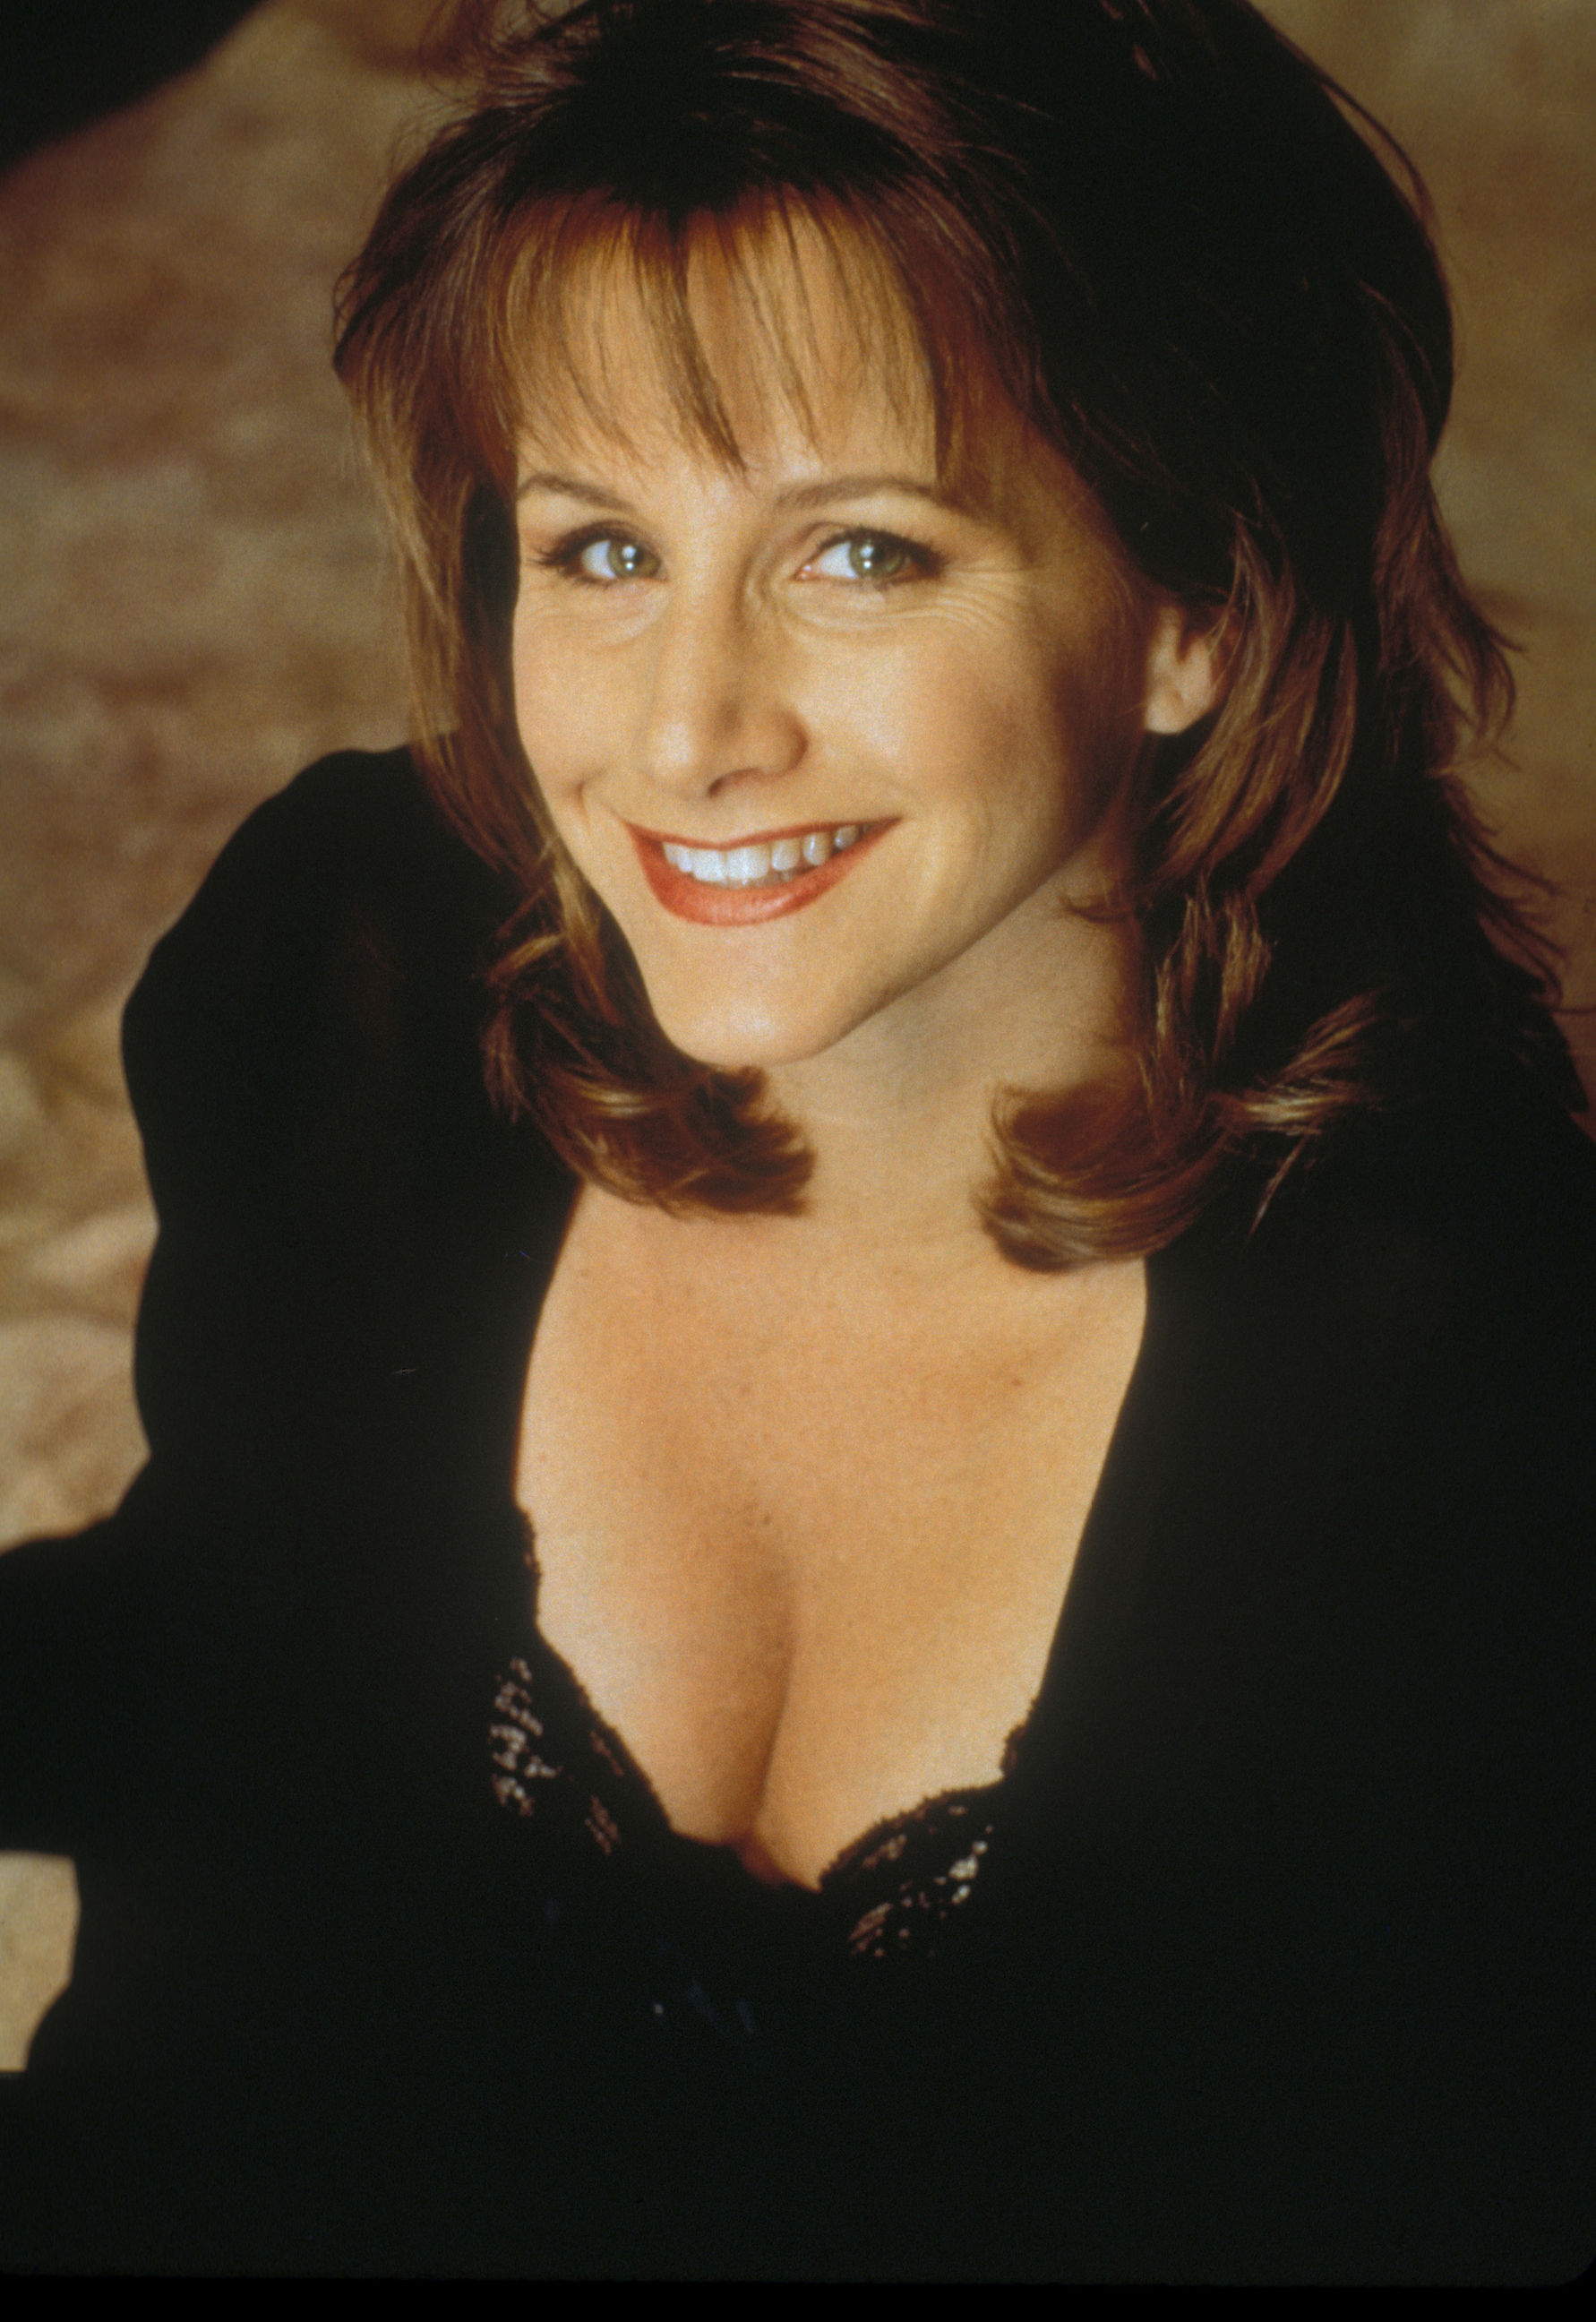 gabrielle carteris movies and tv shows